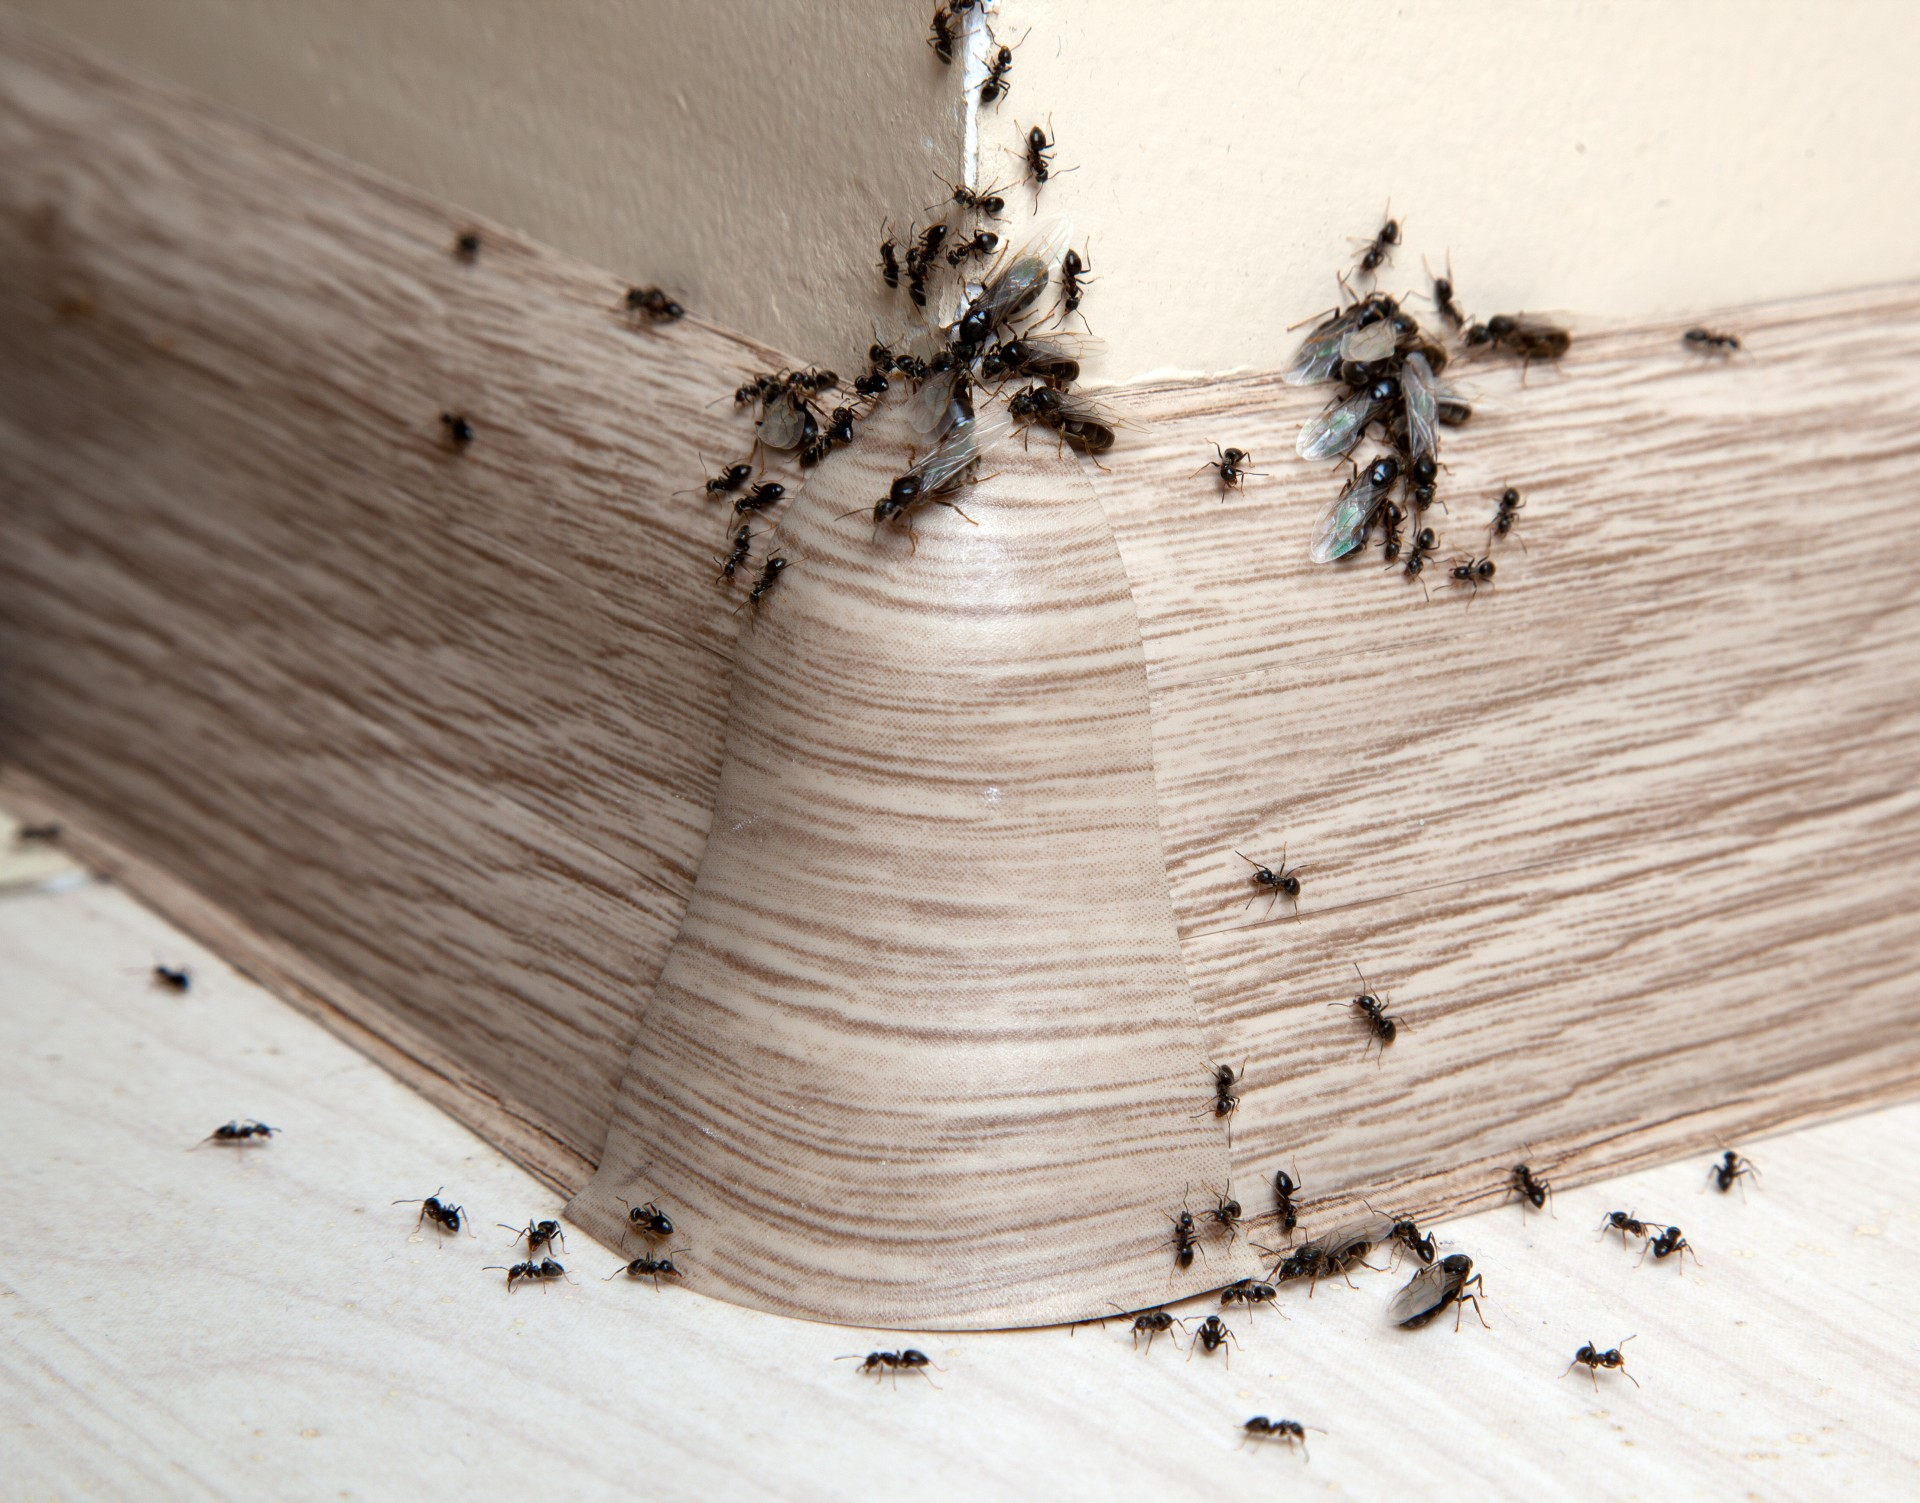 Ant Infestation, Pest Control in Wimbledon, SW19. Call Now 020 8166 9746